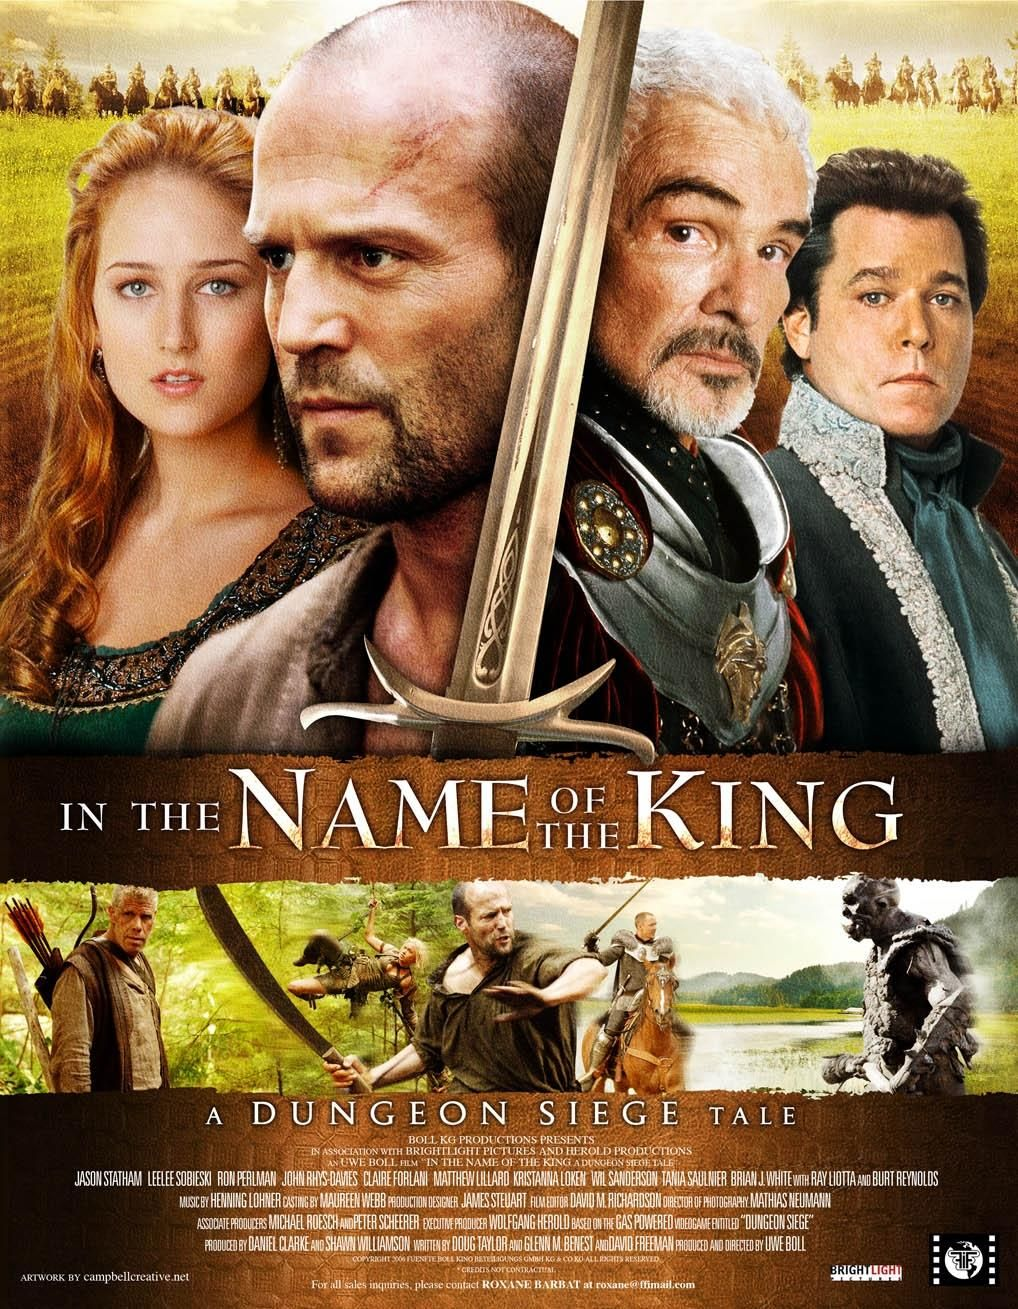 In The Name Of The King A Dungeon Siege Tale Film Review